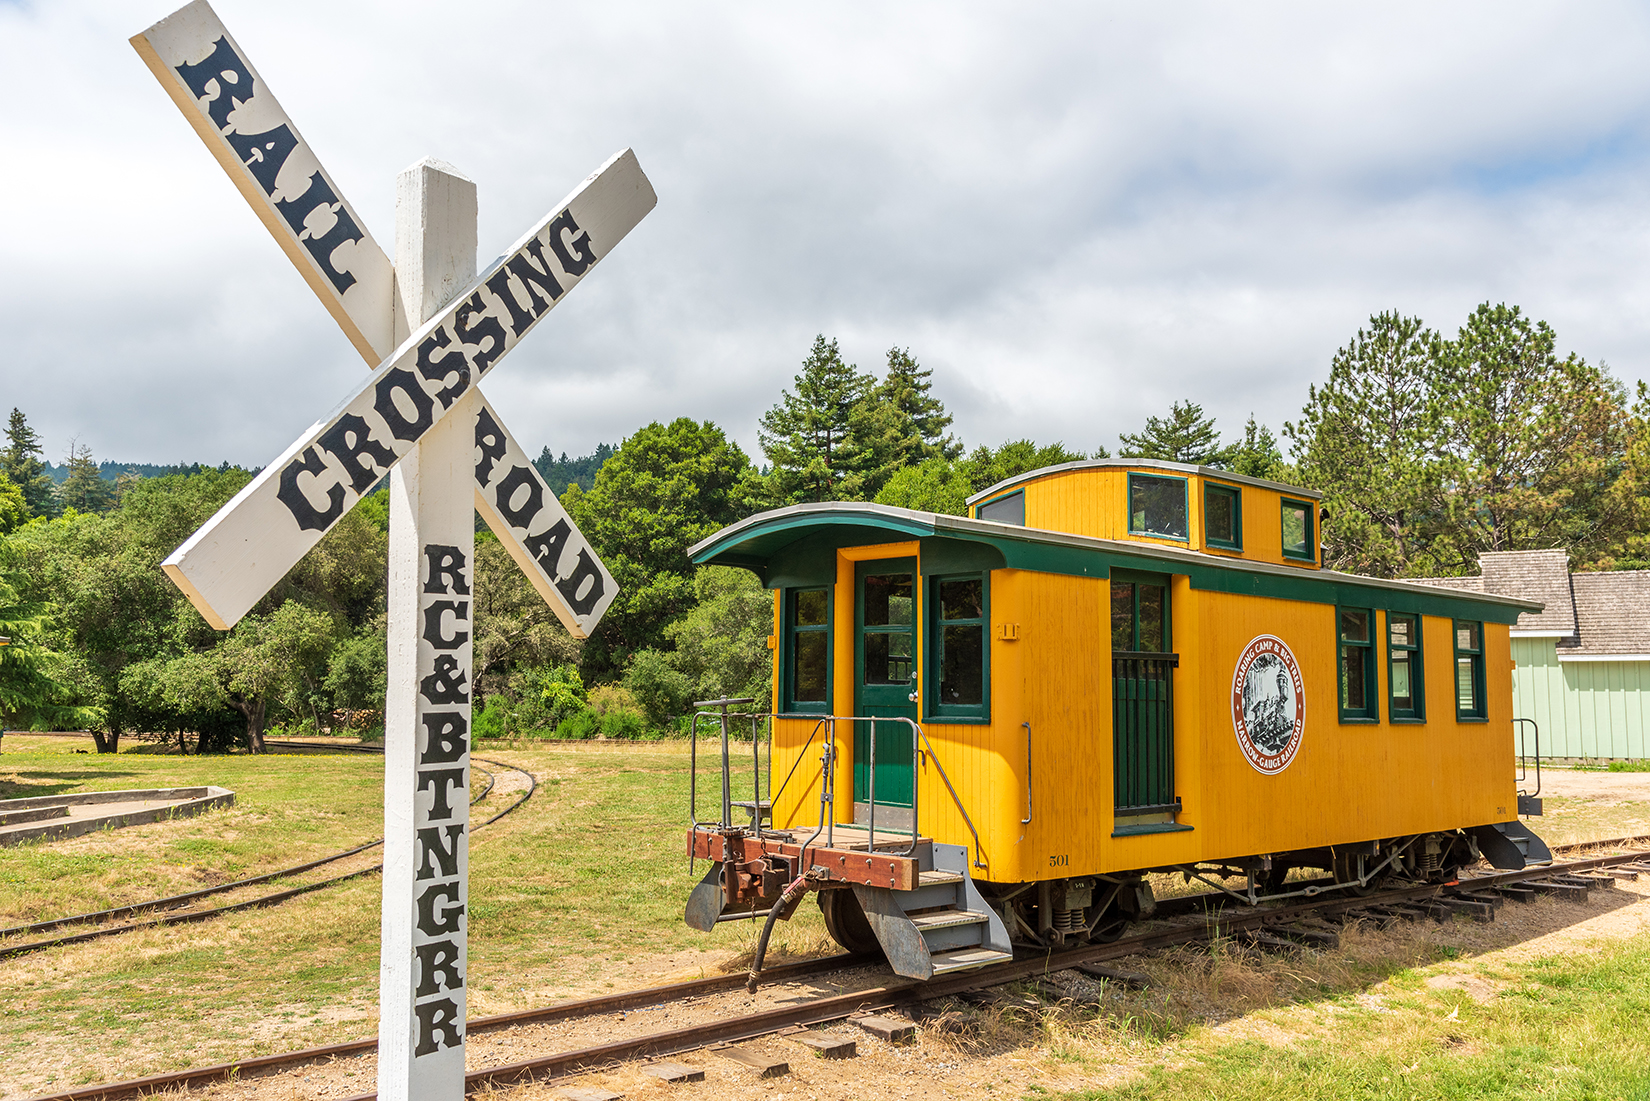 Preserved caboose at the entrance